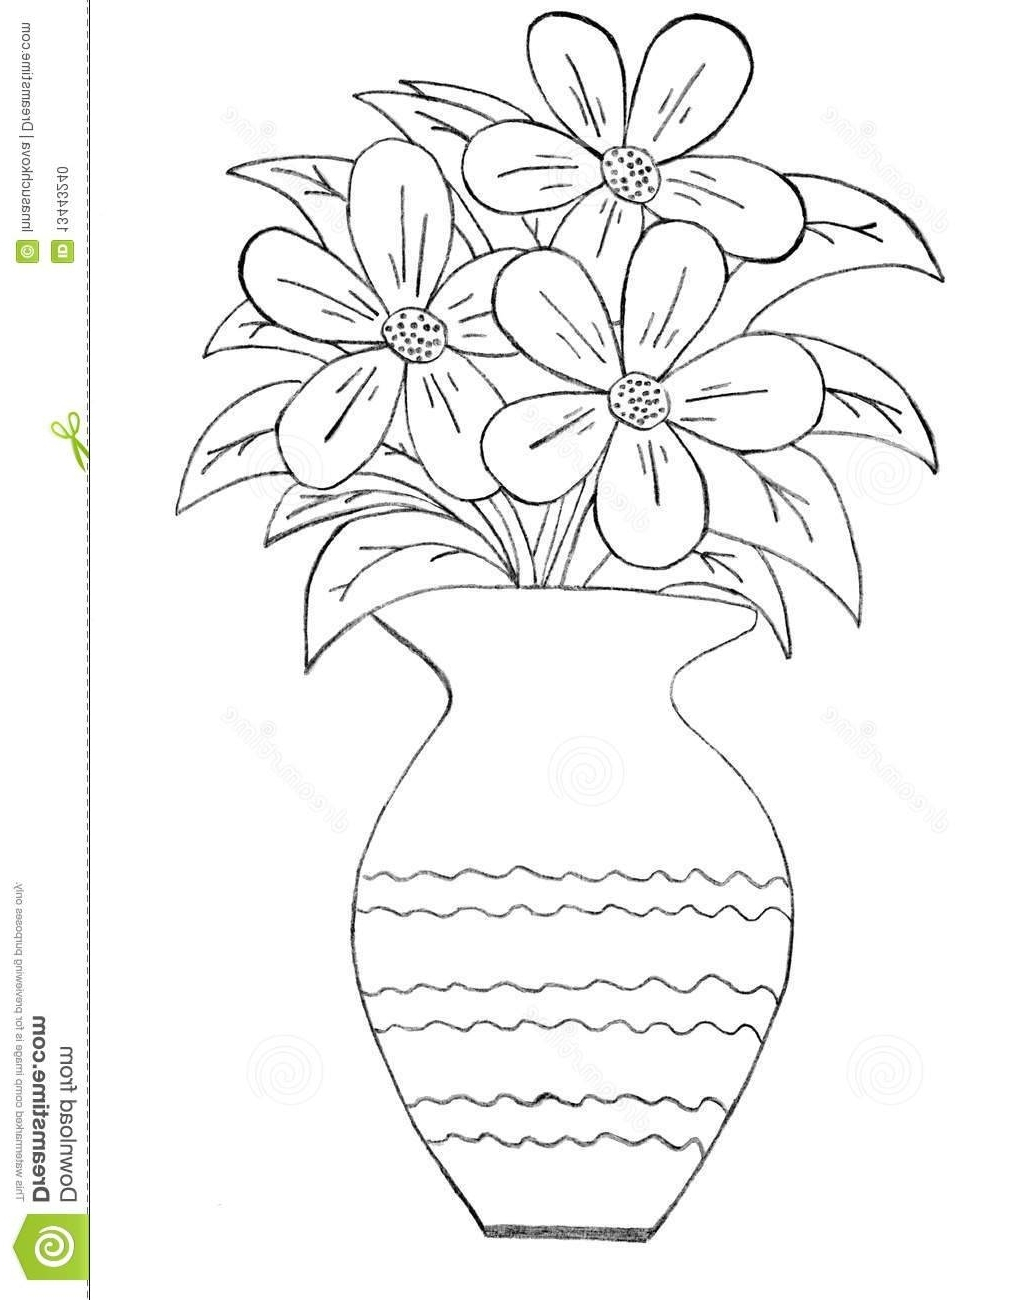 1035x1300 Images Of Flower Vase For Drawing Gallery Flower Vase Of Drawing